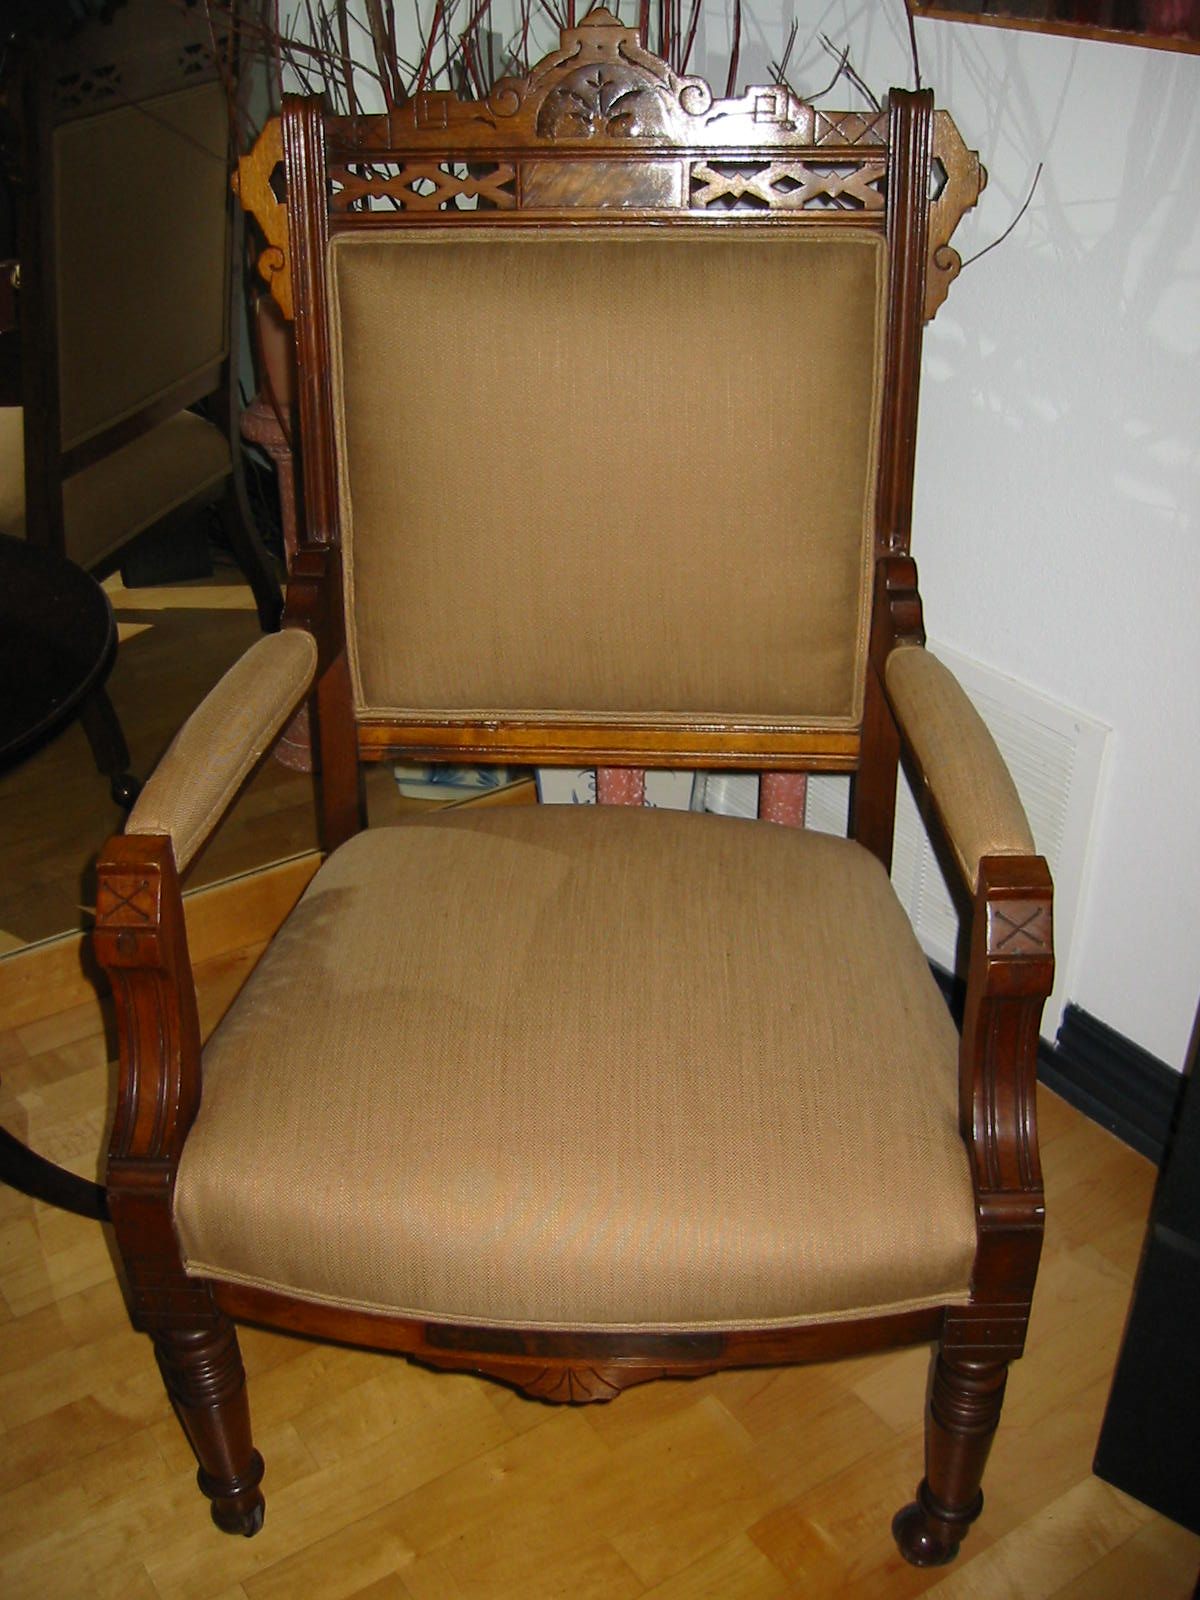 Antique arm chair, incredible carving, geometric design, details, crown,  Empire crest in motif, updated soft chocolate Textile upholstery. wooden  nails. ... - Empire Crest Antique Wood Arm Chair For Sale Antiques.com